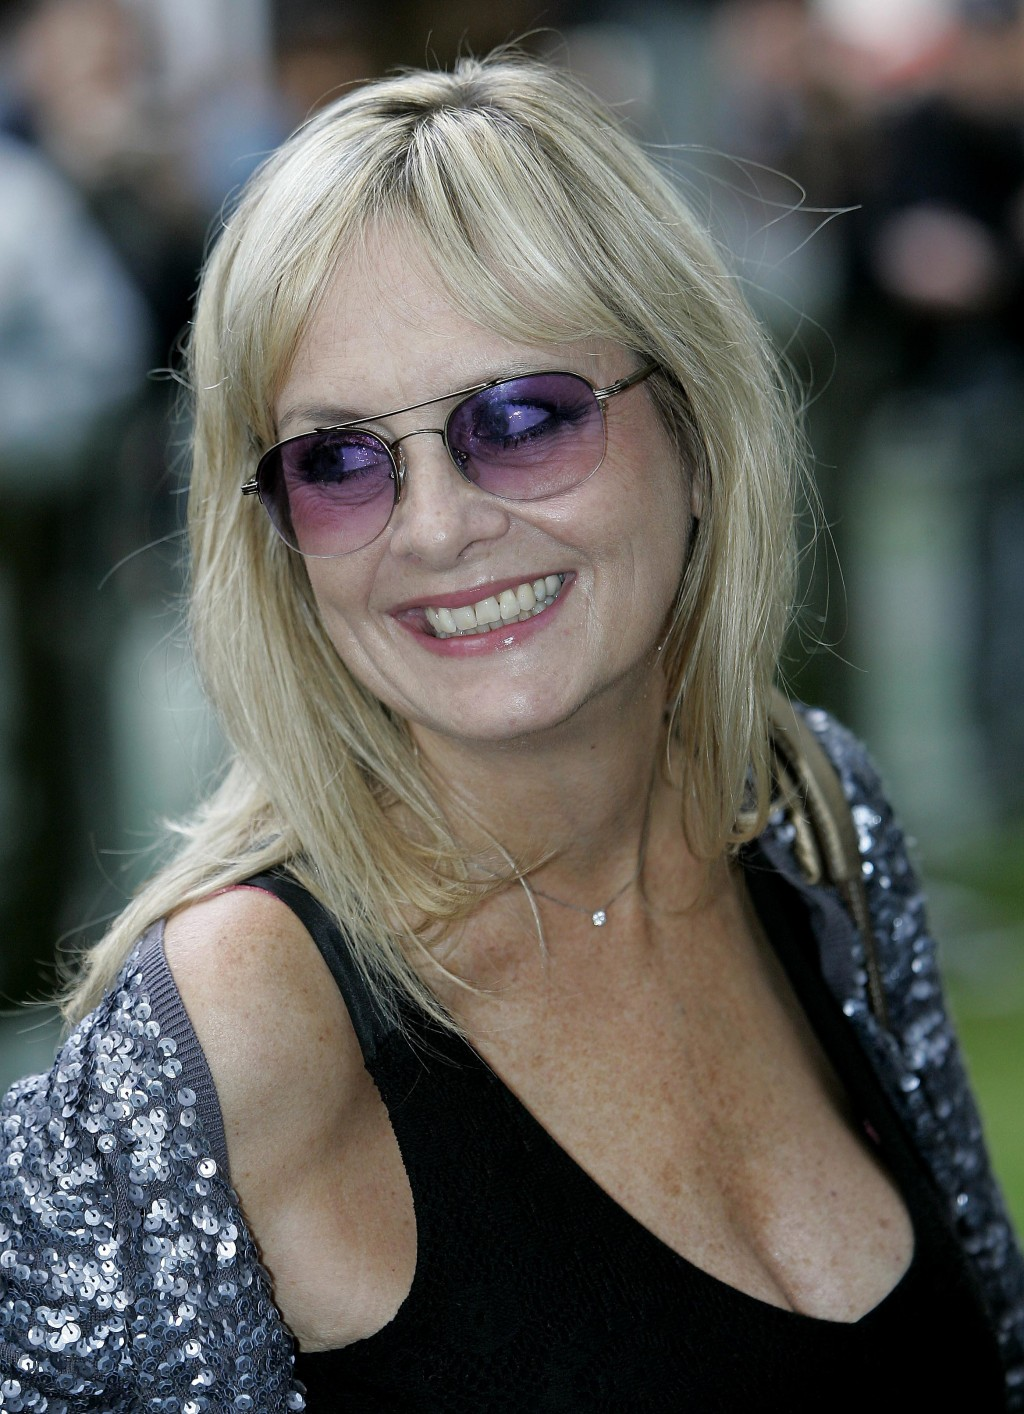 FILE - In this file photo dated Wednesday, Aug. 15, 2007, former English model, actress and singer, Twiggy Lawson, commonly known as Twiggy, in London